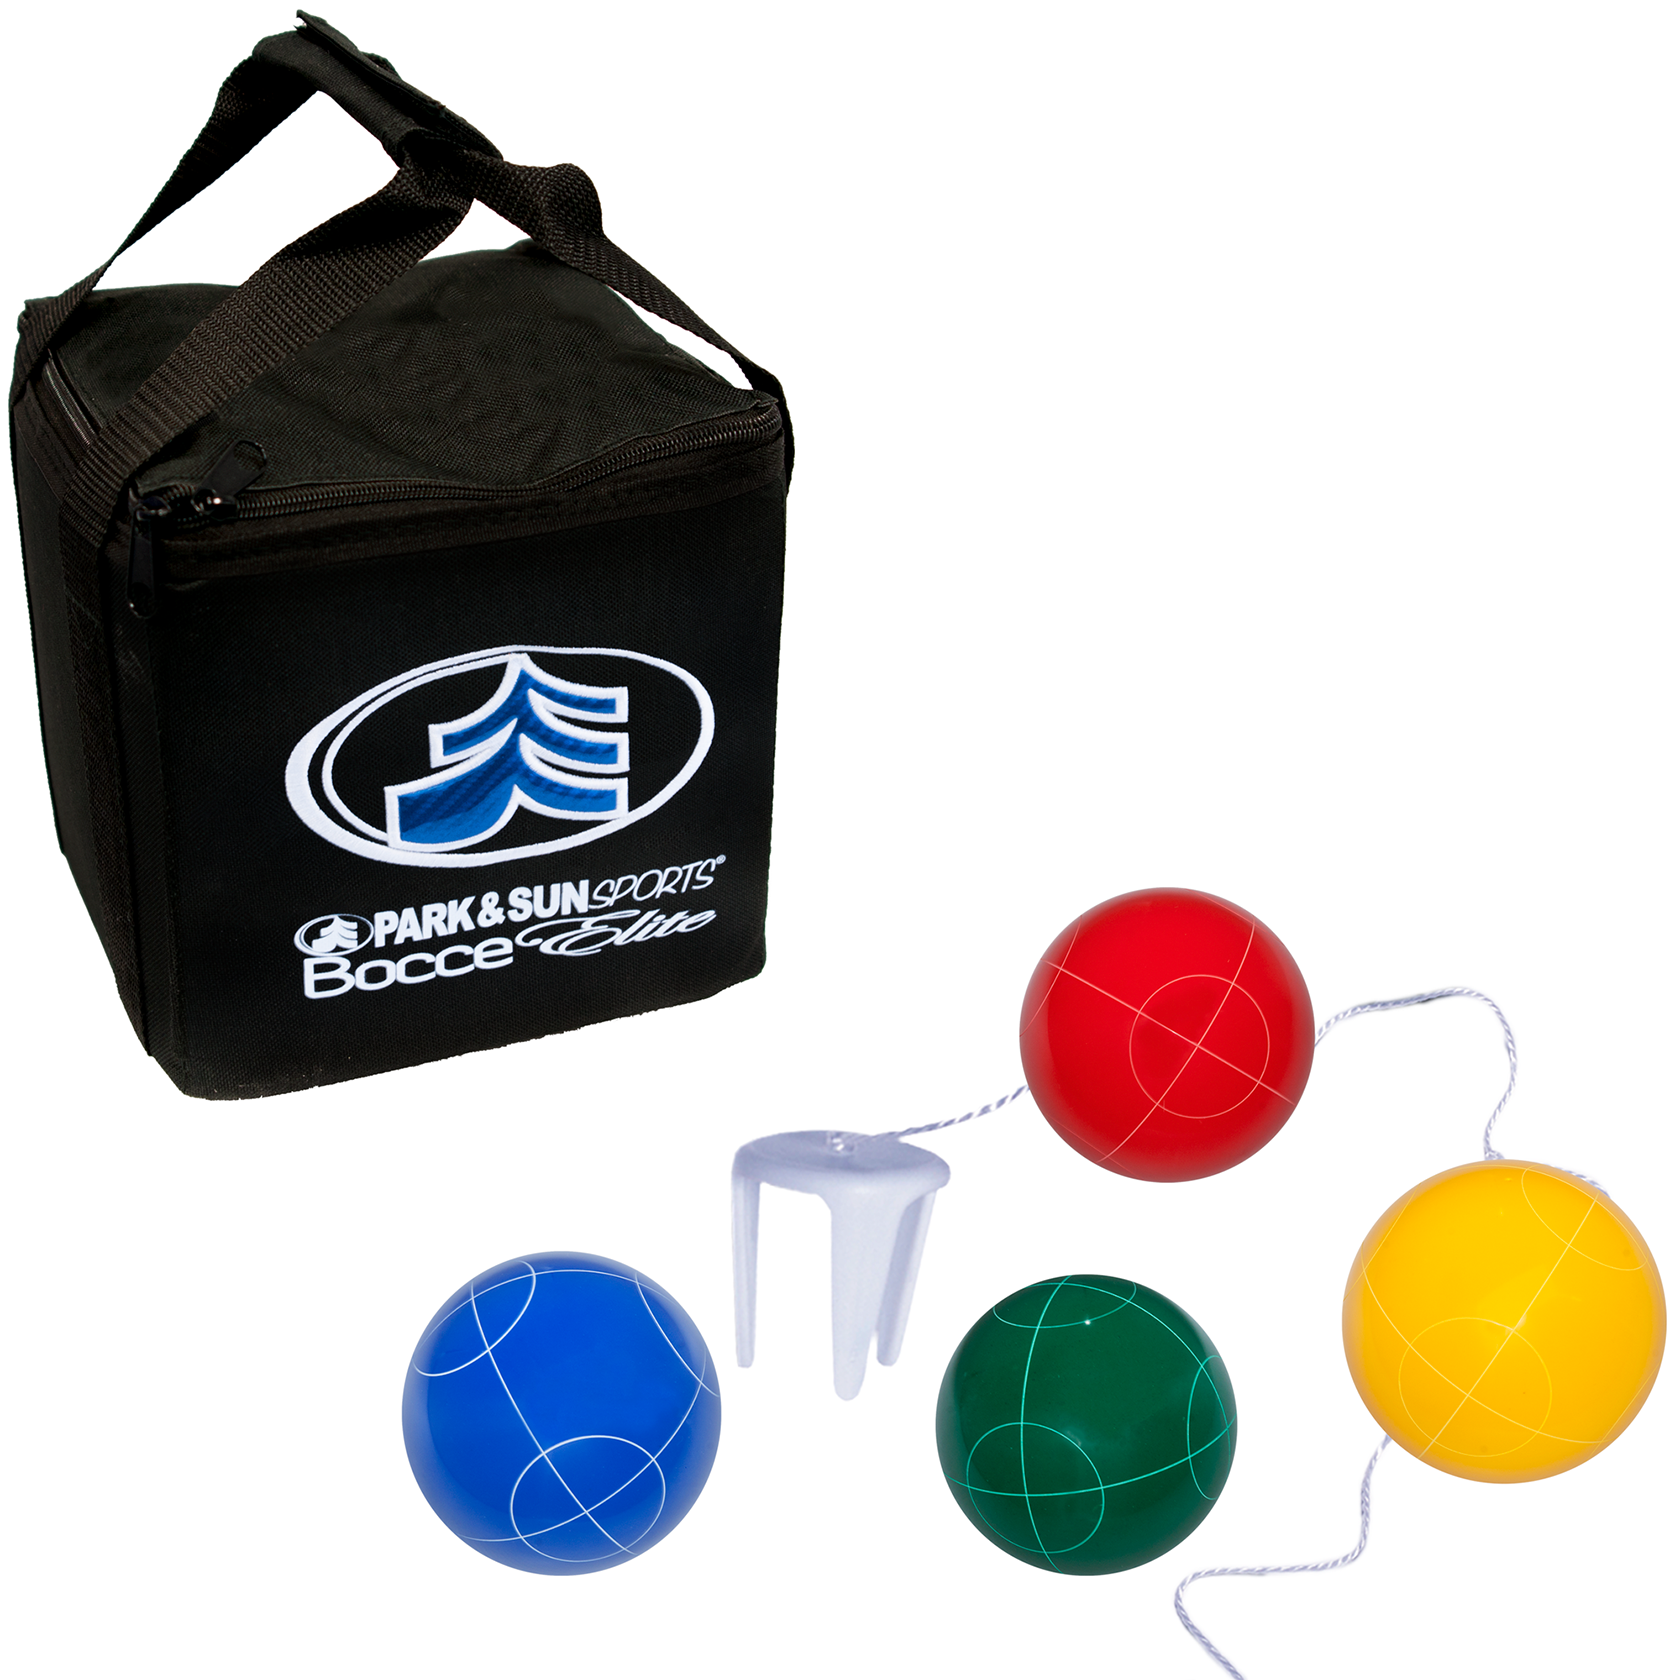 Park and Sports Bocce Elite Tournament Product Layout